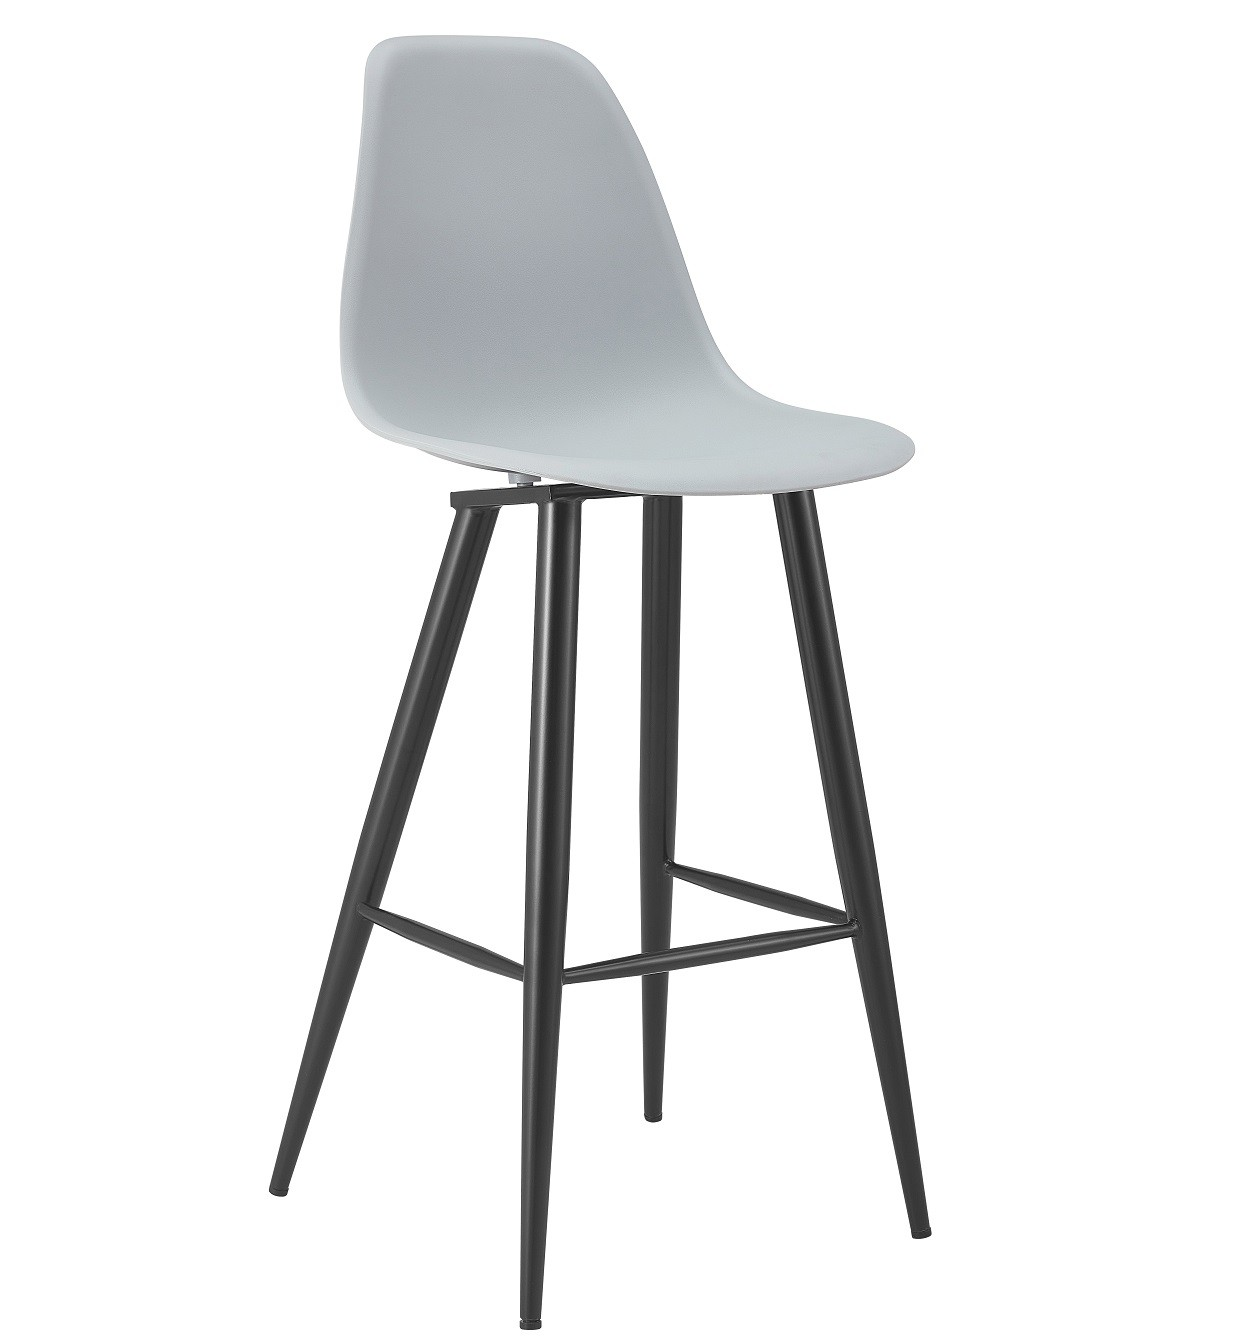 Stool CLUNY, Metal Epoxy Black, Polypropylene Gray